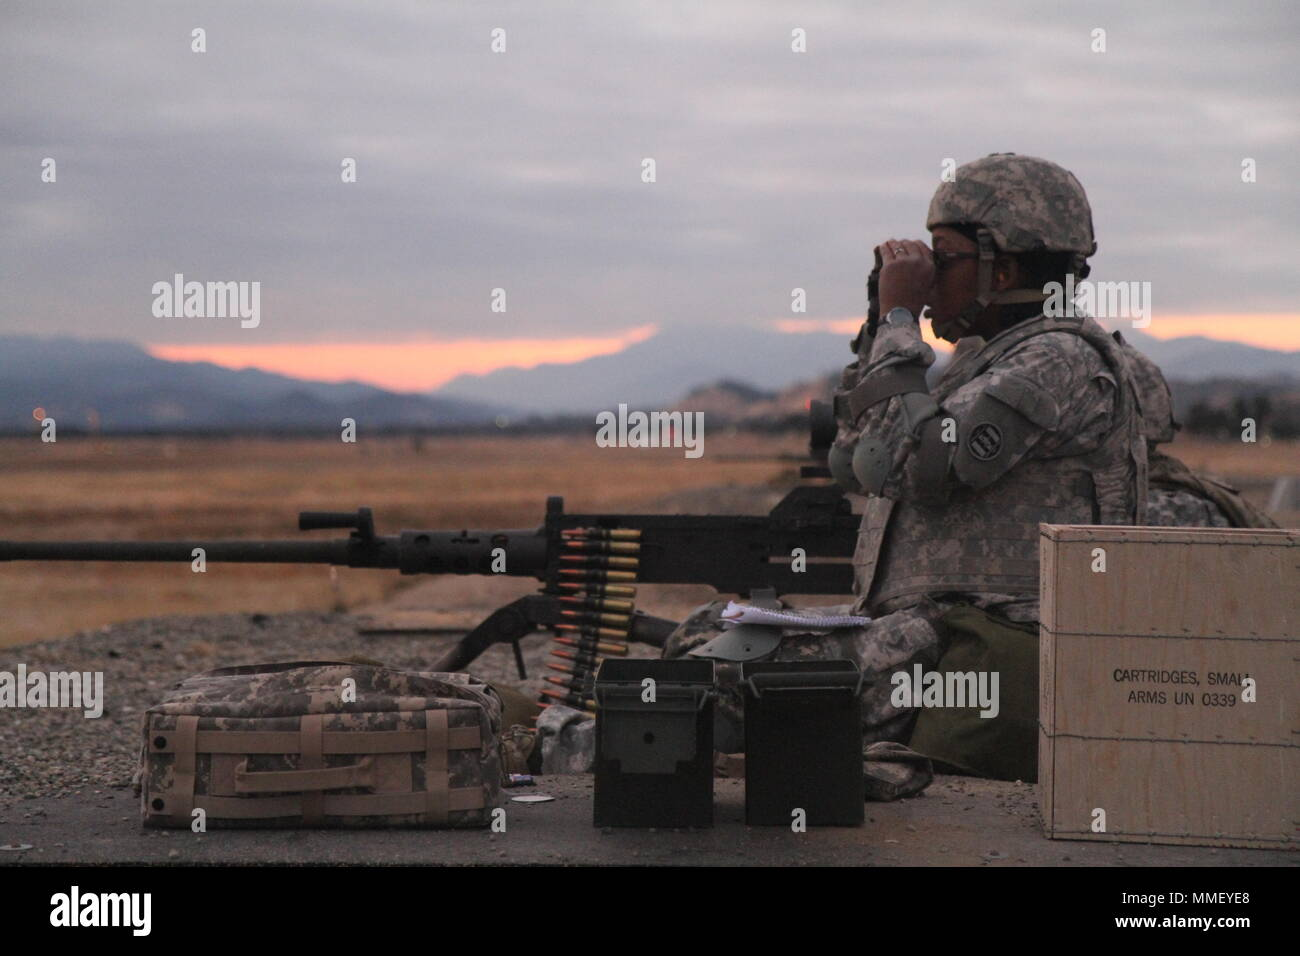 Army Reserve Ready Force X High Resolution Stock Photography And Images Alamy